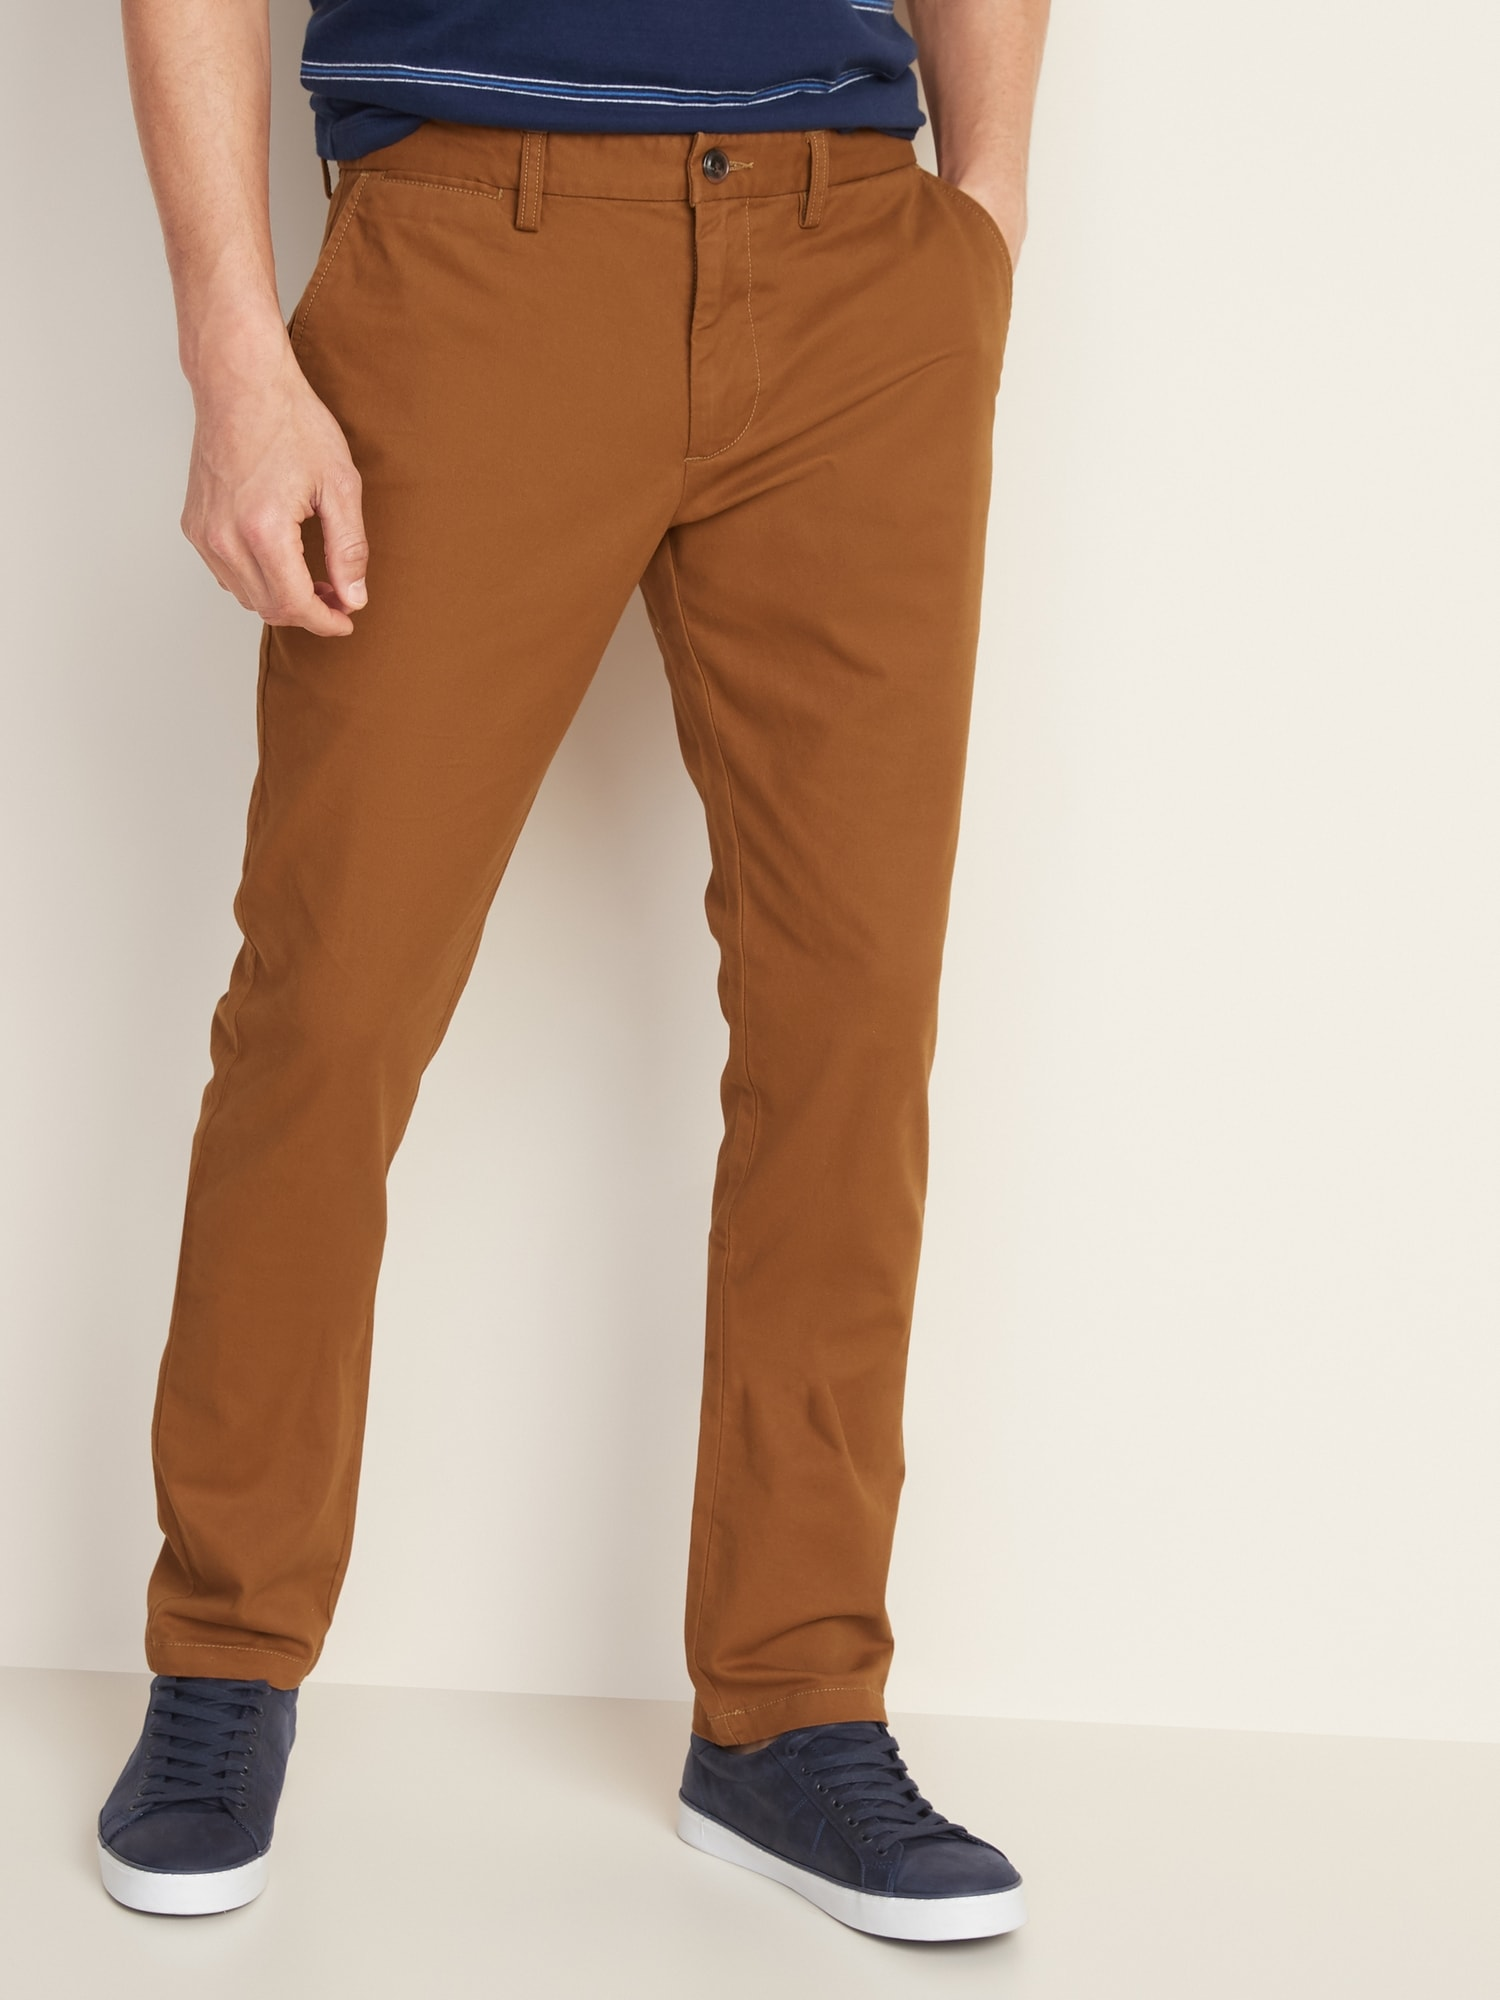 592896621ef Slim Ultimate Built-In Flex Khakis for Men | Old Navy